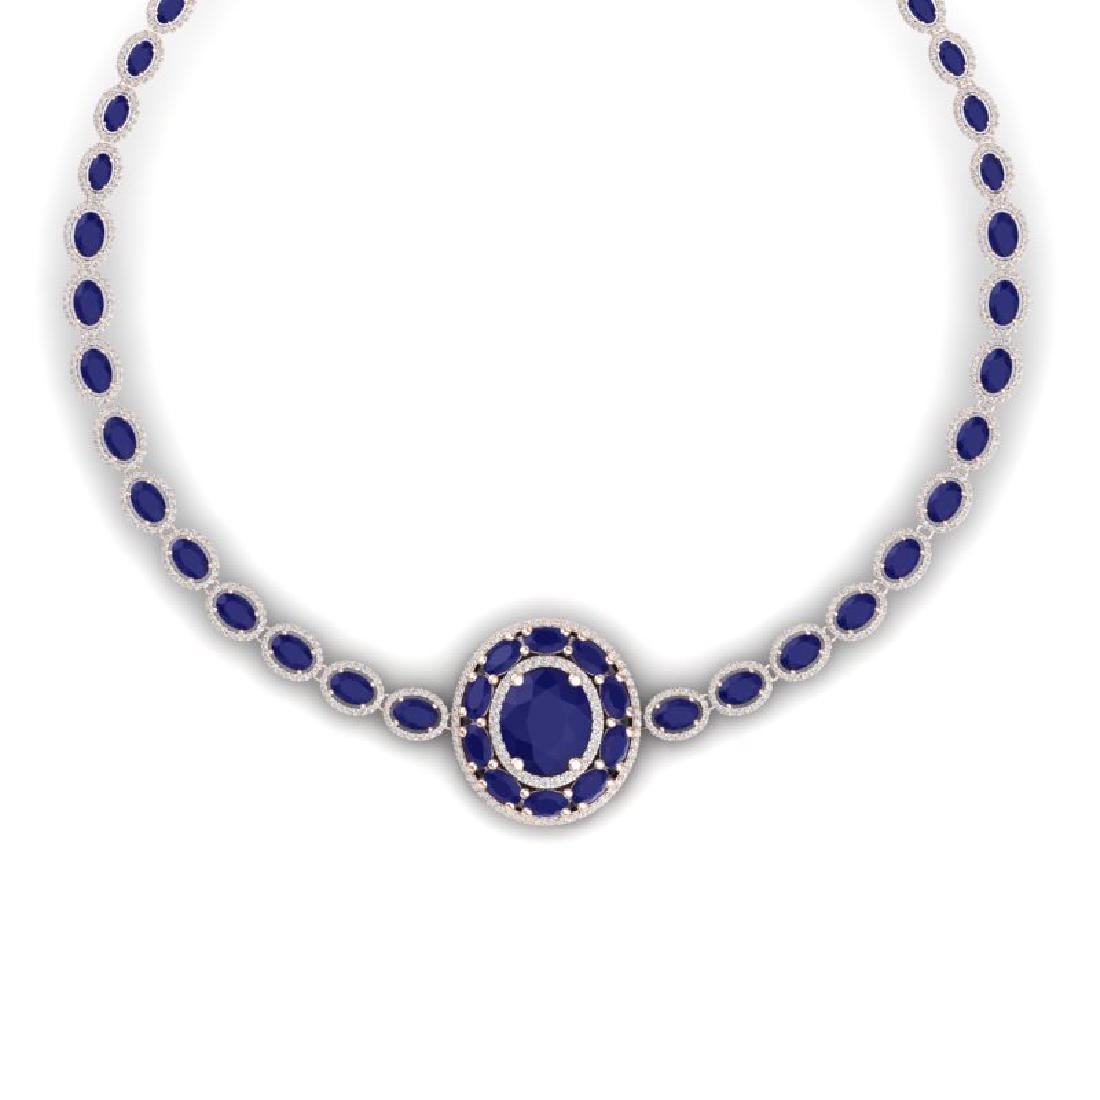 43.54 CTW Royalty Sapphire & VS Diamond Necklace 18K - 2